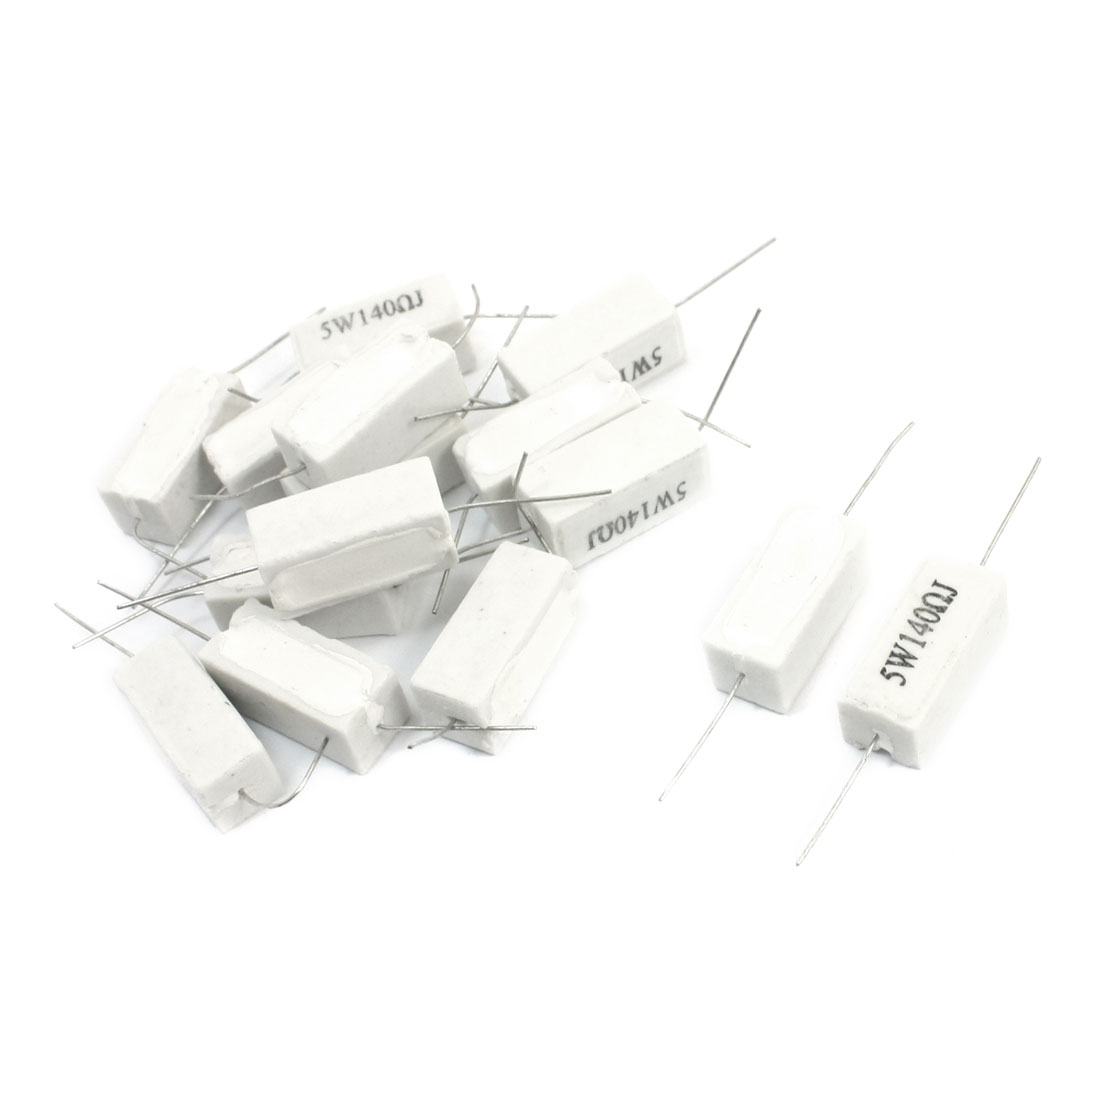 5Watt 140 Ohm Axial Leading Type Through Hole Mounting Rectangle Case Ceramic Cement Power Resistor 15Pcs